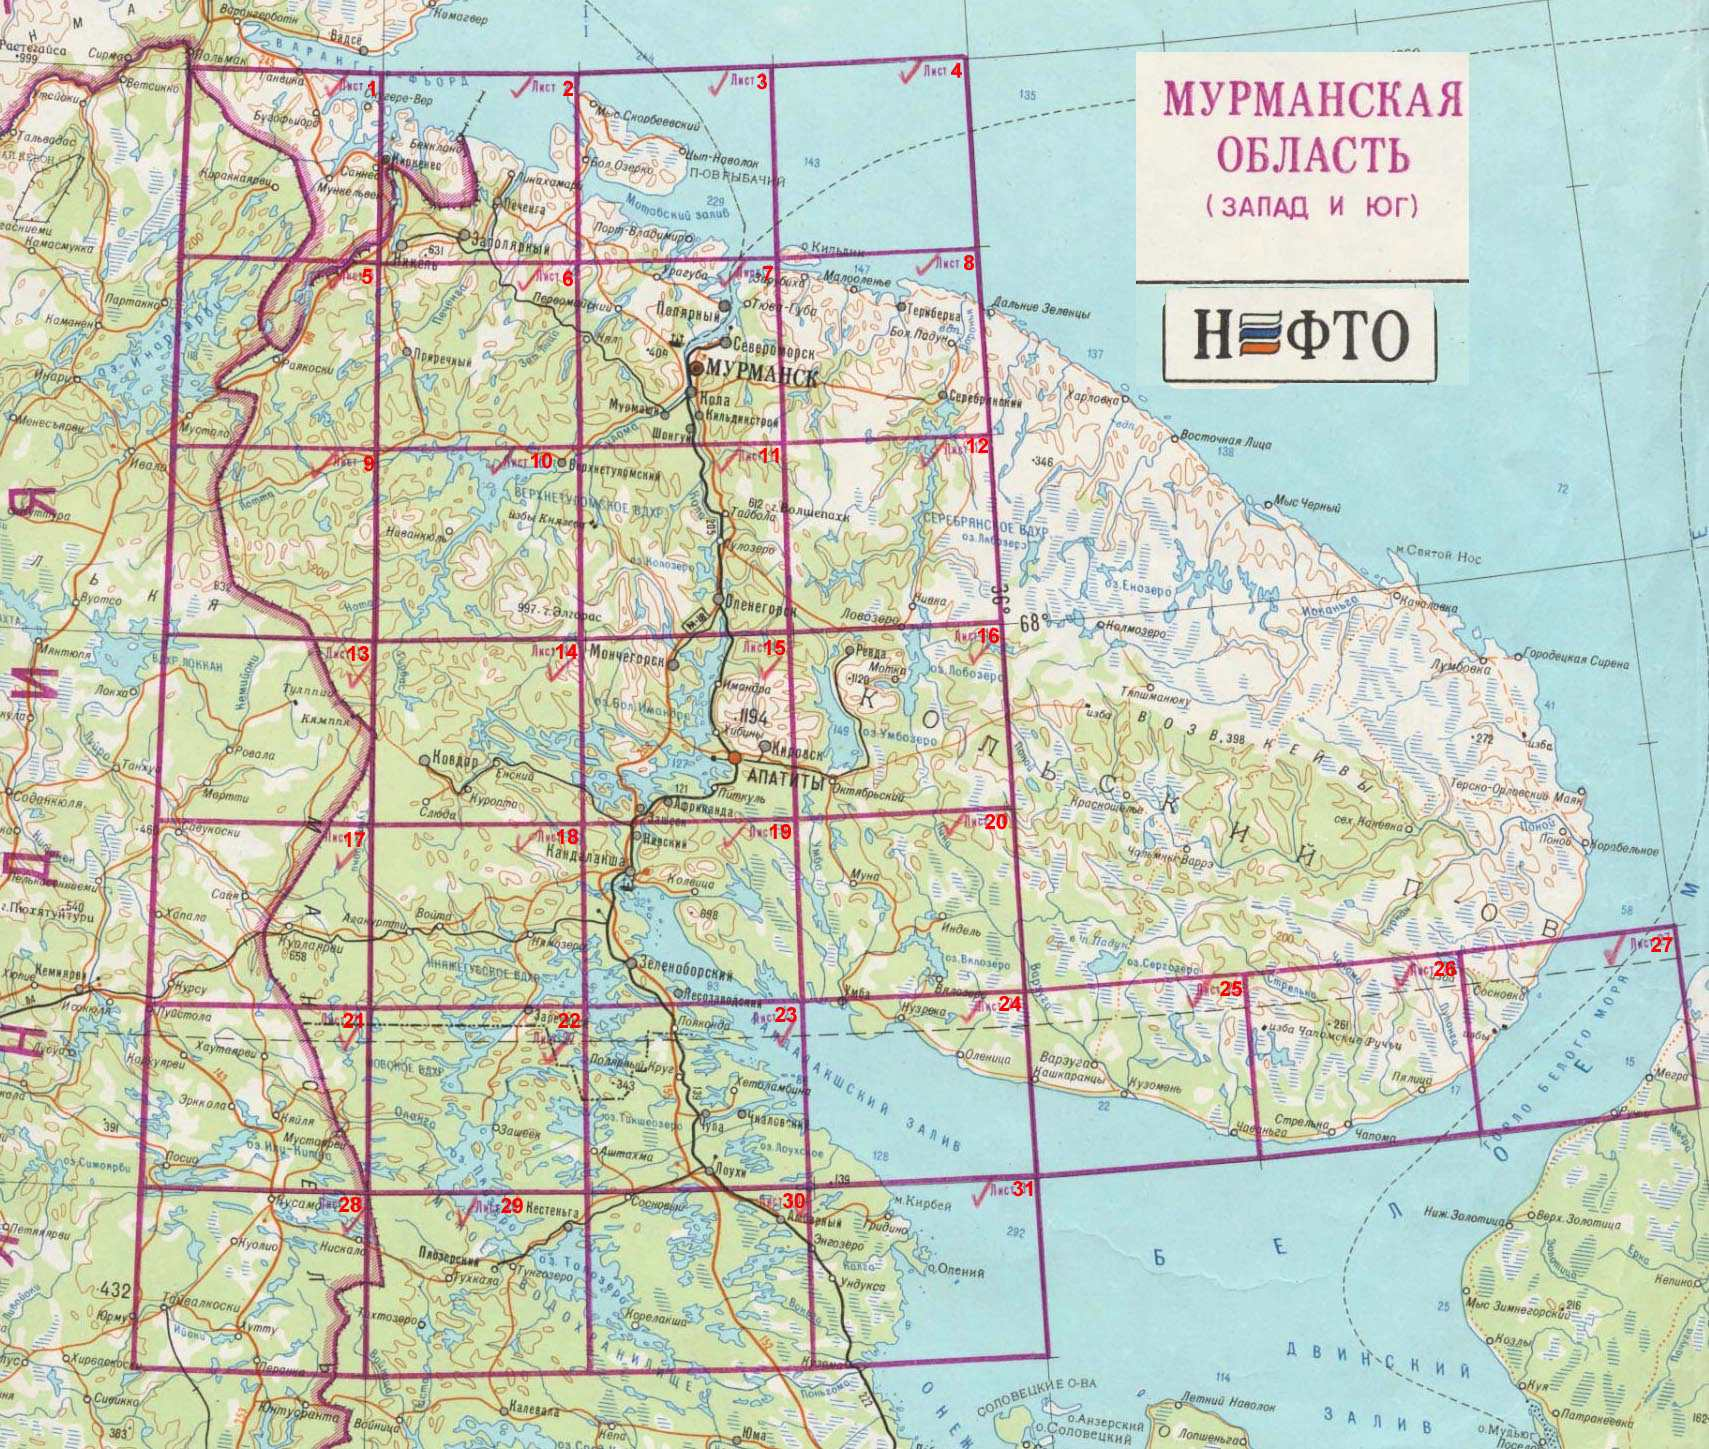 SULAIR Branner Library And Map Collections Map Collections - Military topographic maps